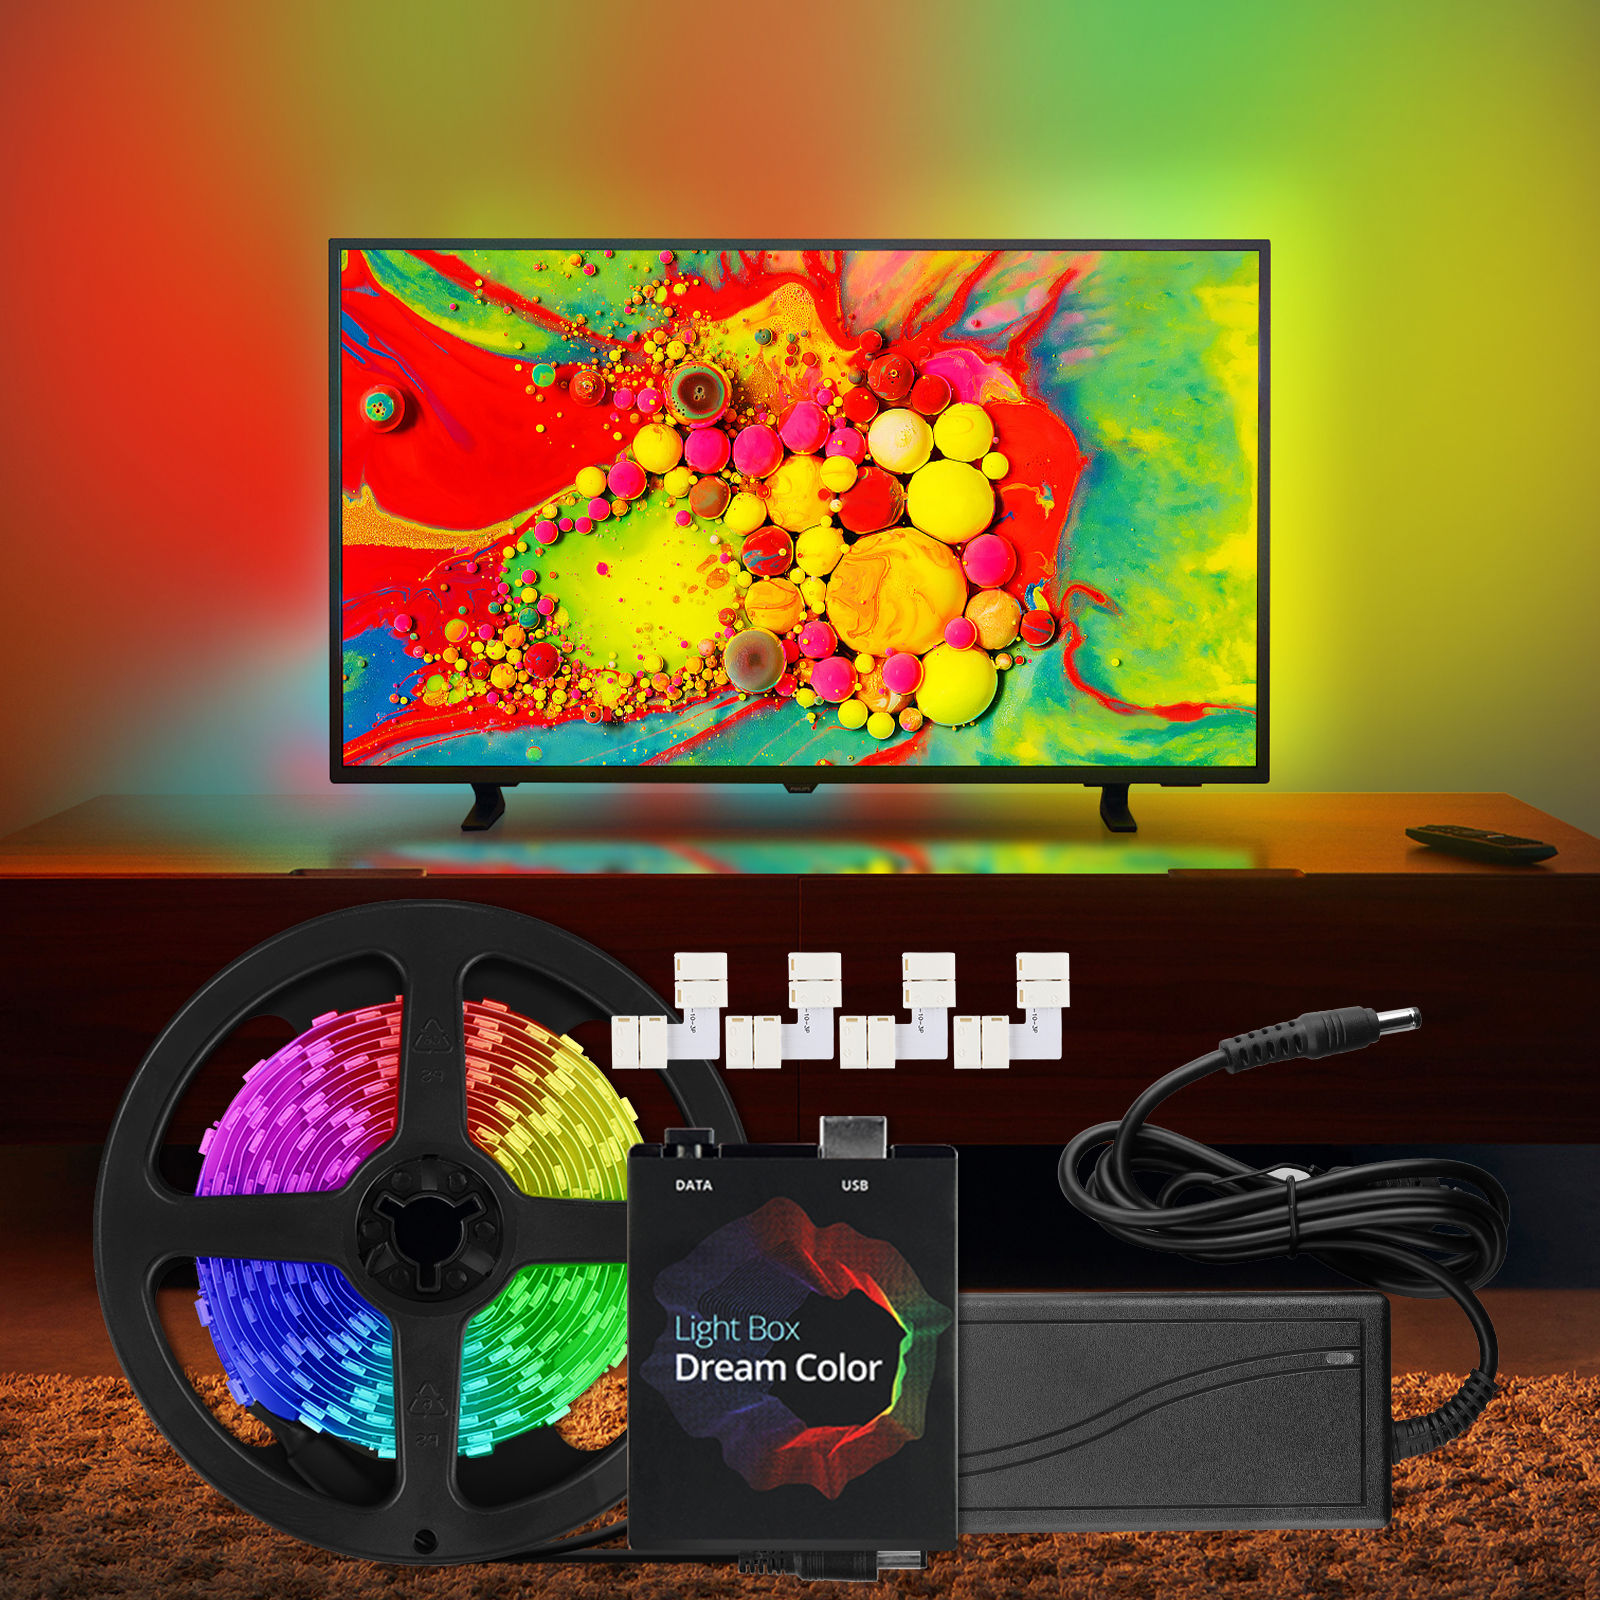 """WS2812b Ambilight RGB USB LED Strip Light with 3 pin """"L"""" Shape Connector Kit for Desktop PC Screen Ambient Lighting 1M - 5M"""